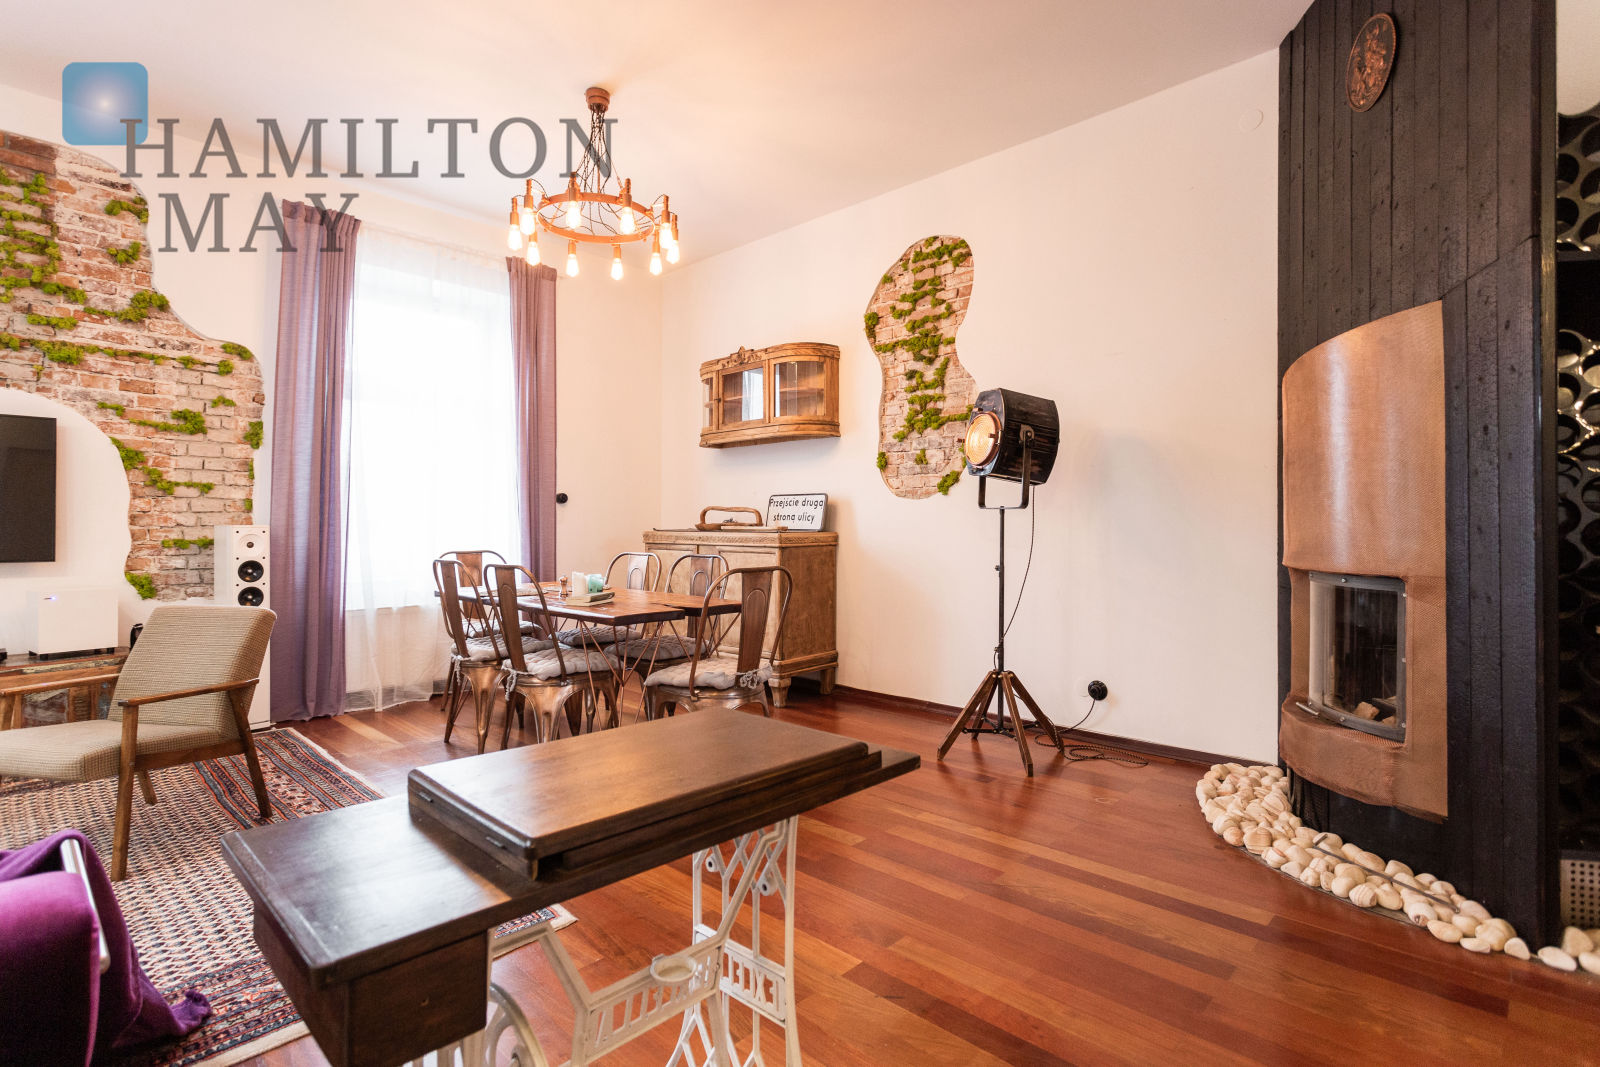 A 2-level, loft-style apartment offered for sale Krakow for sale